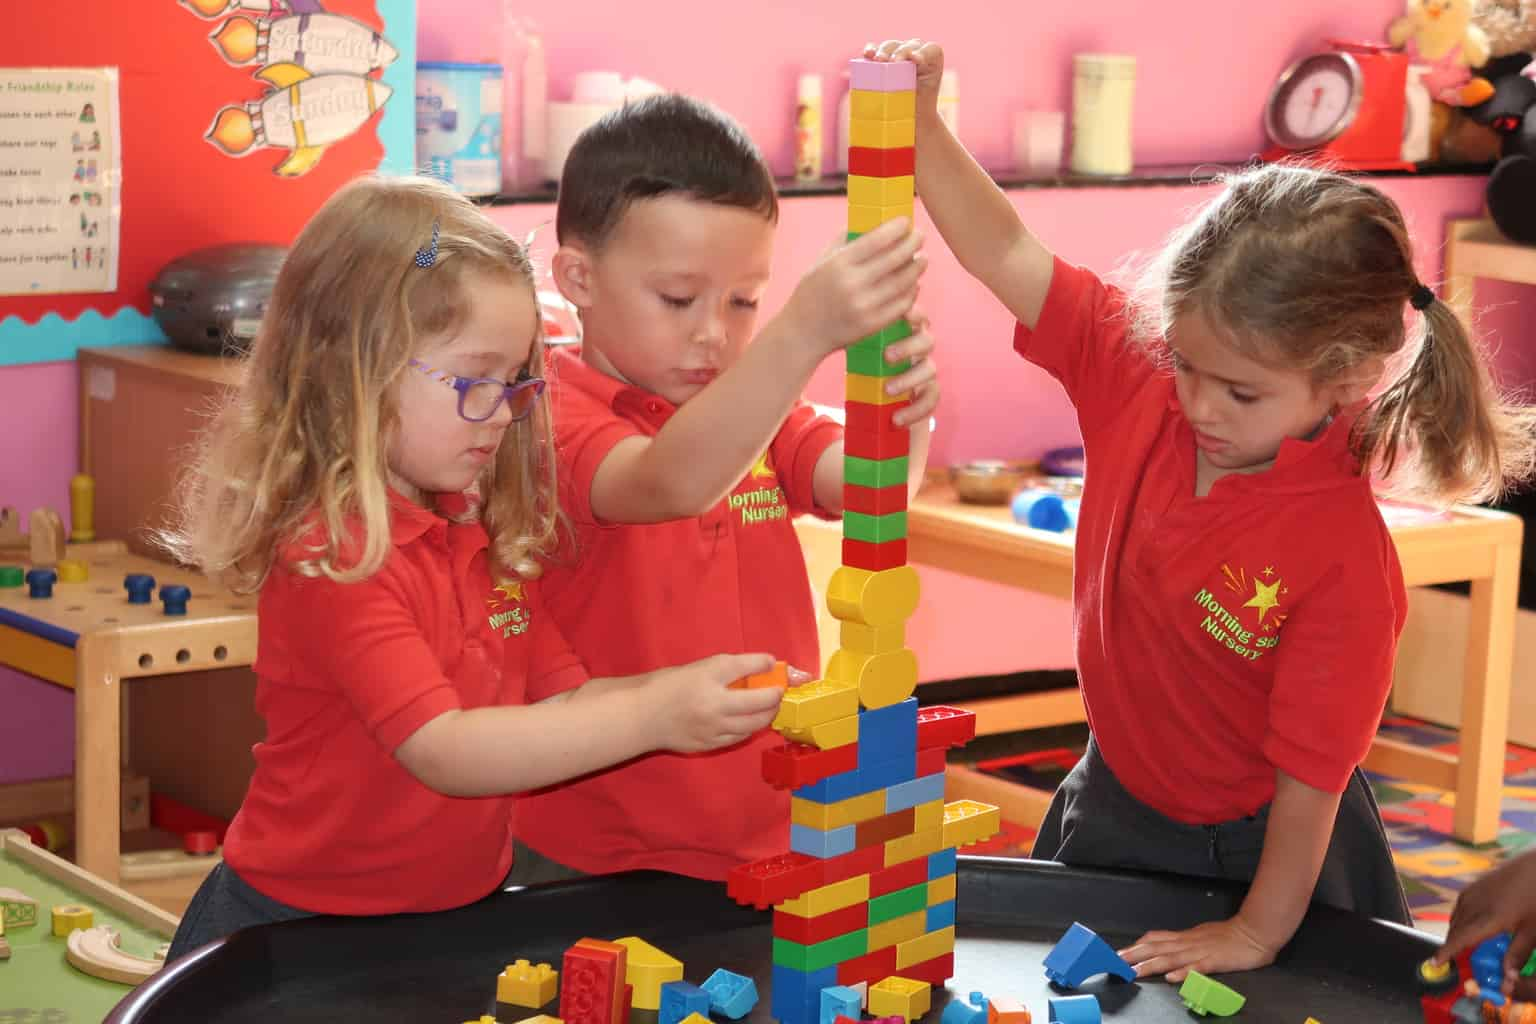 Morning Star Nursery Students Playing